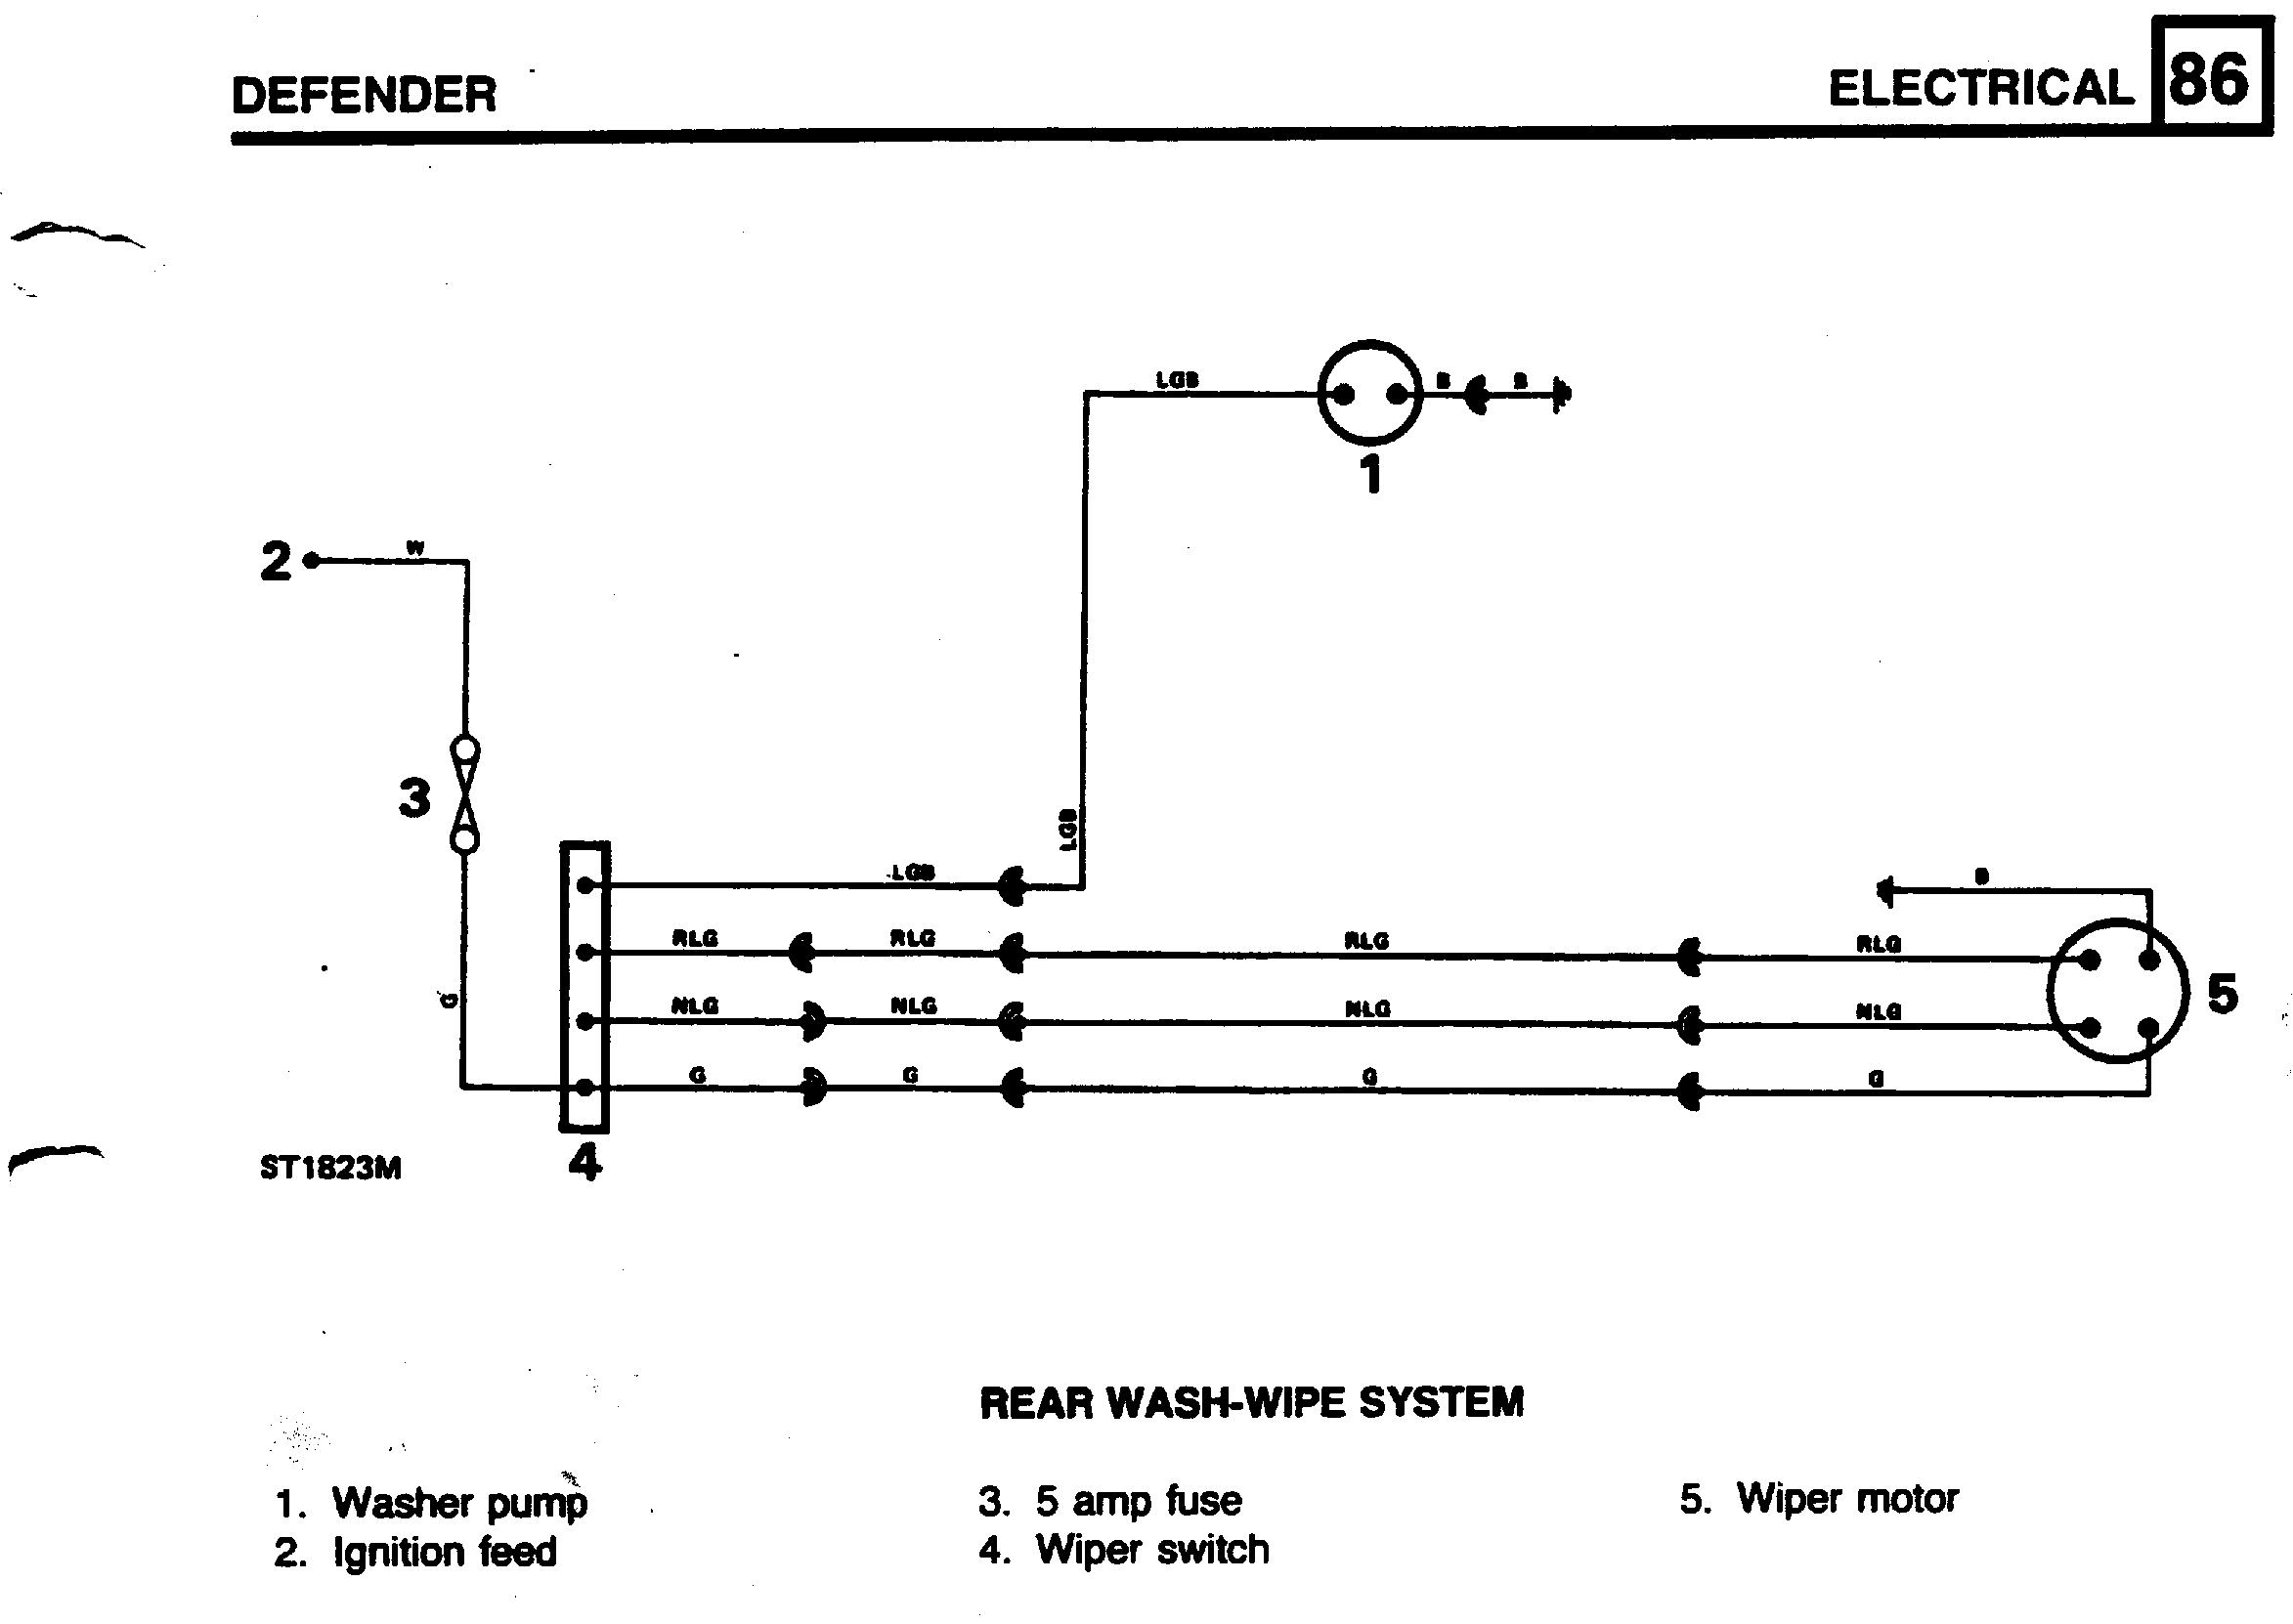 Land Rover Series 3 Engine Diagram Vehicle Wiring Diagrams 2 Wiper Motor House